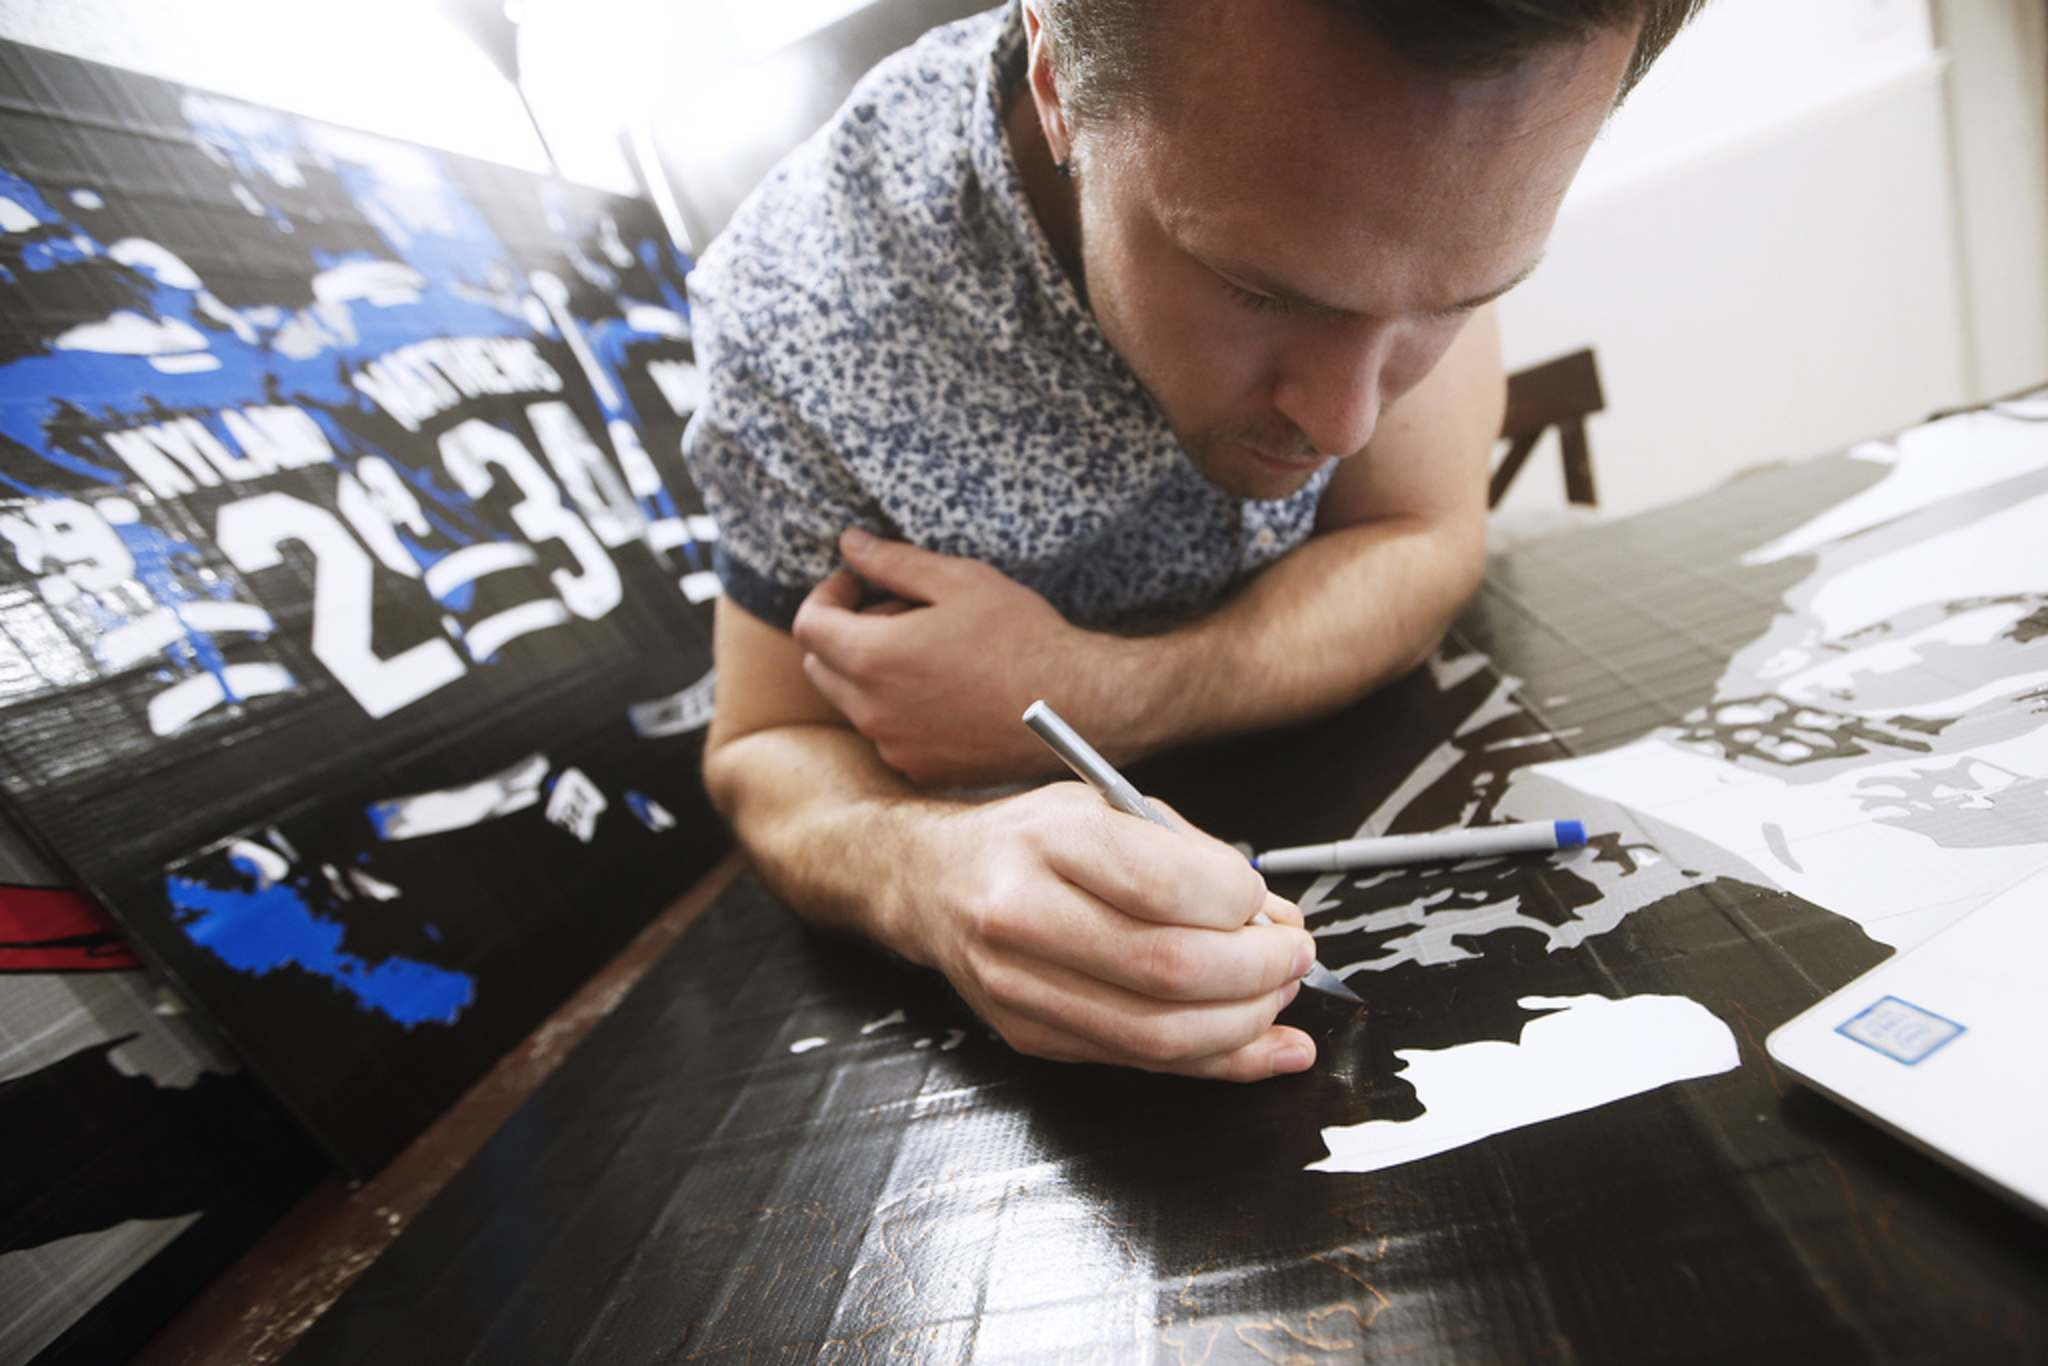 Levi Sobering, duct tape artist and founder of Duct Tape Dynasty, a home-based business that produces duct-tape art, works on a new piece in his home in Winnipeg.</p>